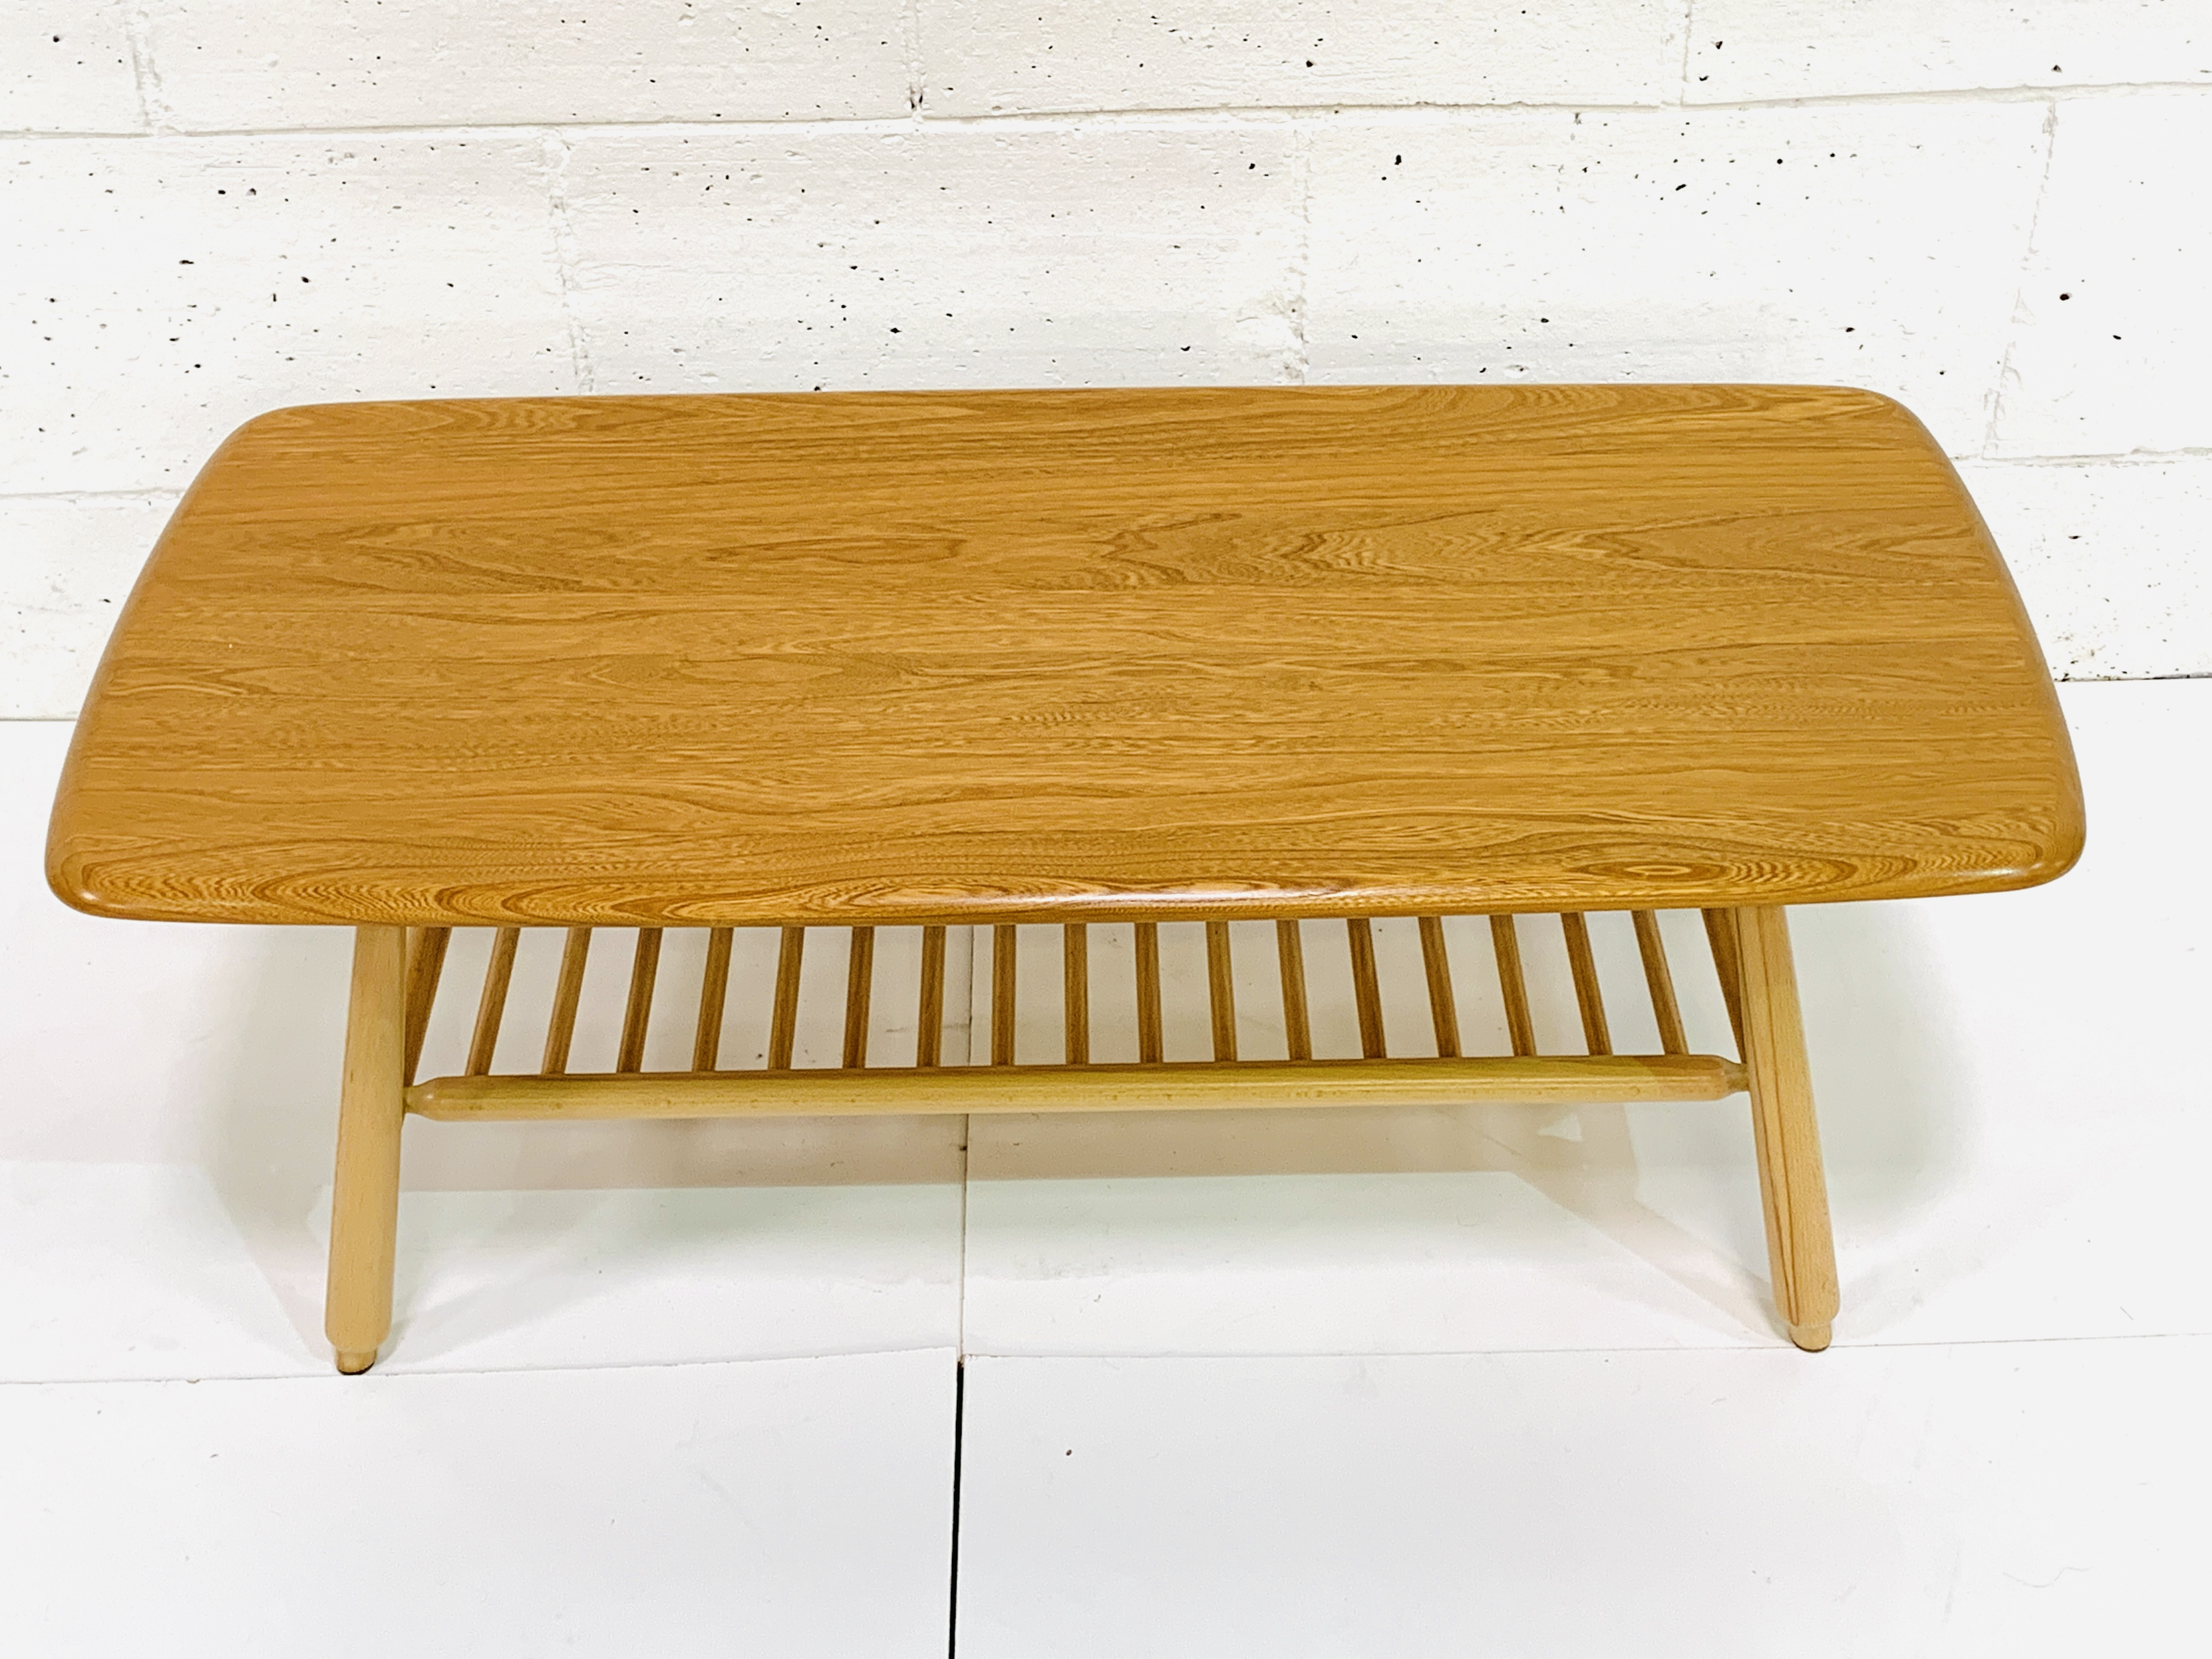 Ercol coffee table - Image 2 of 4